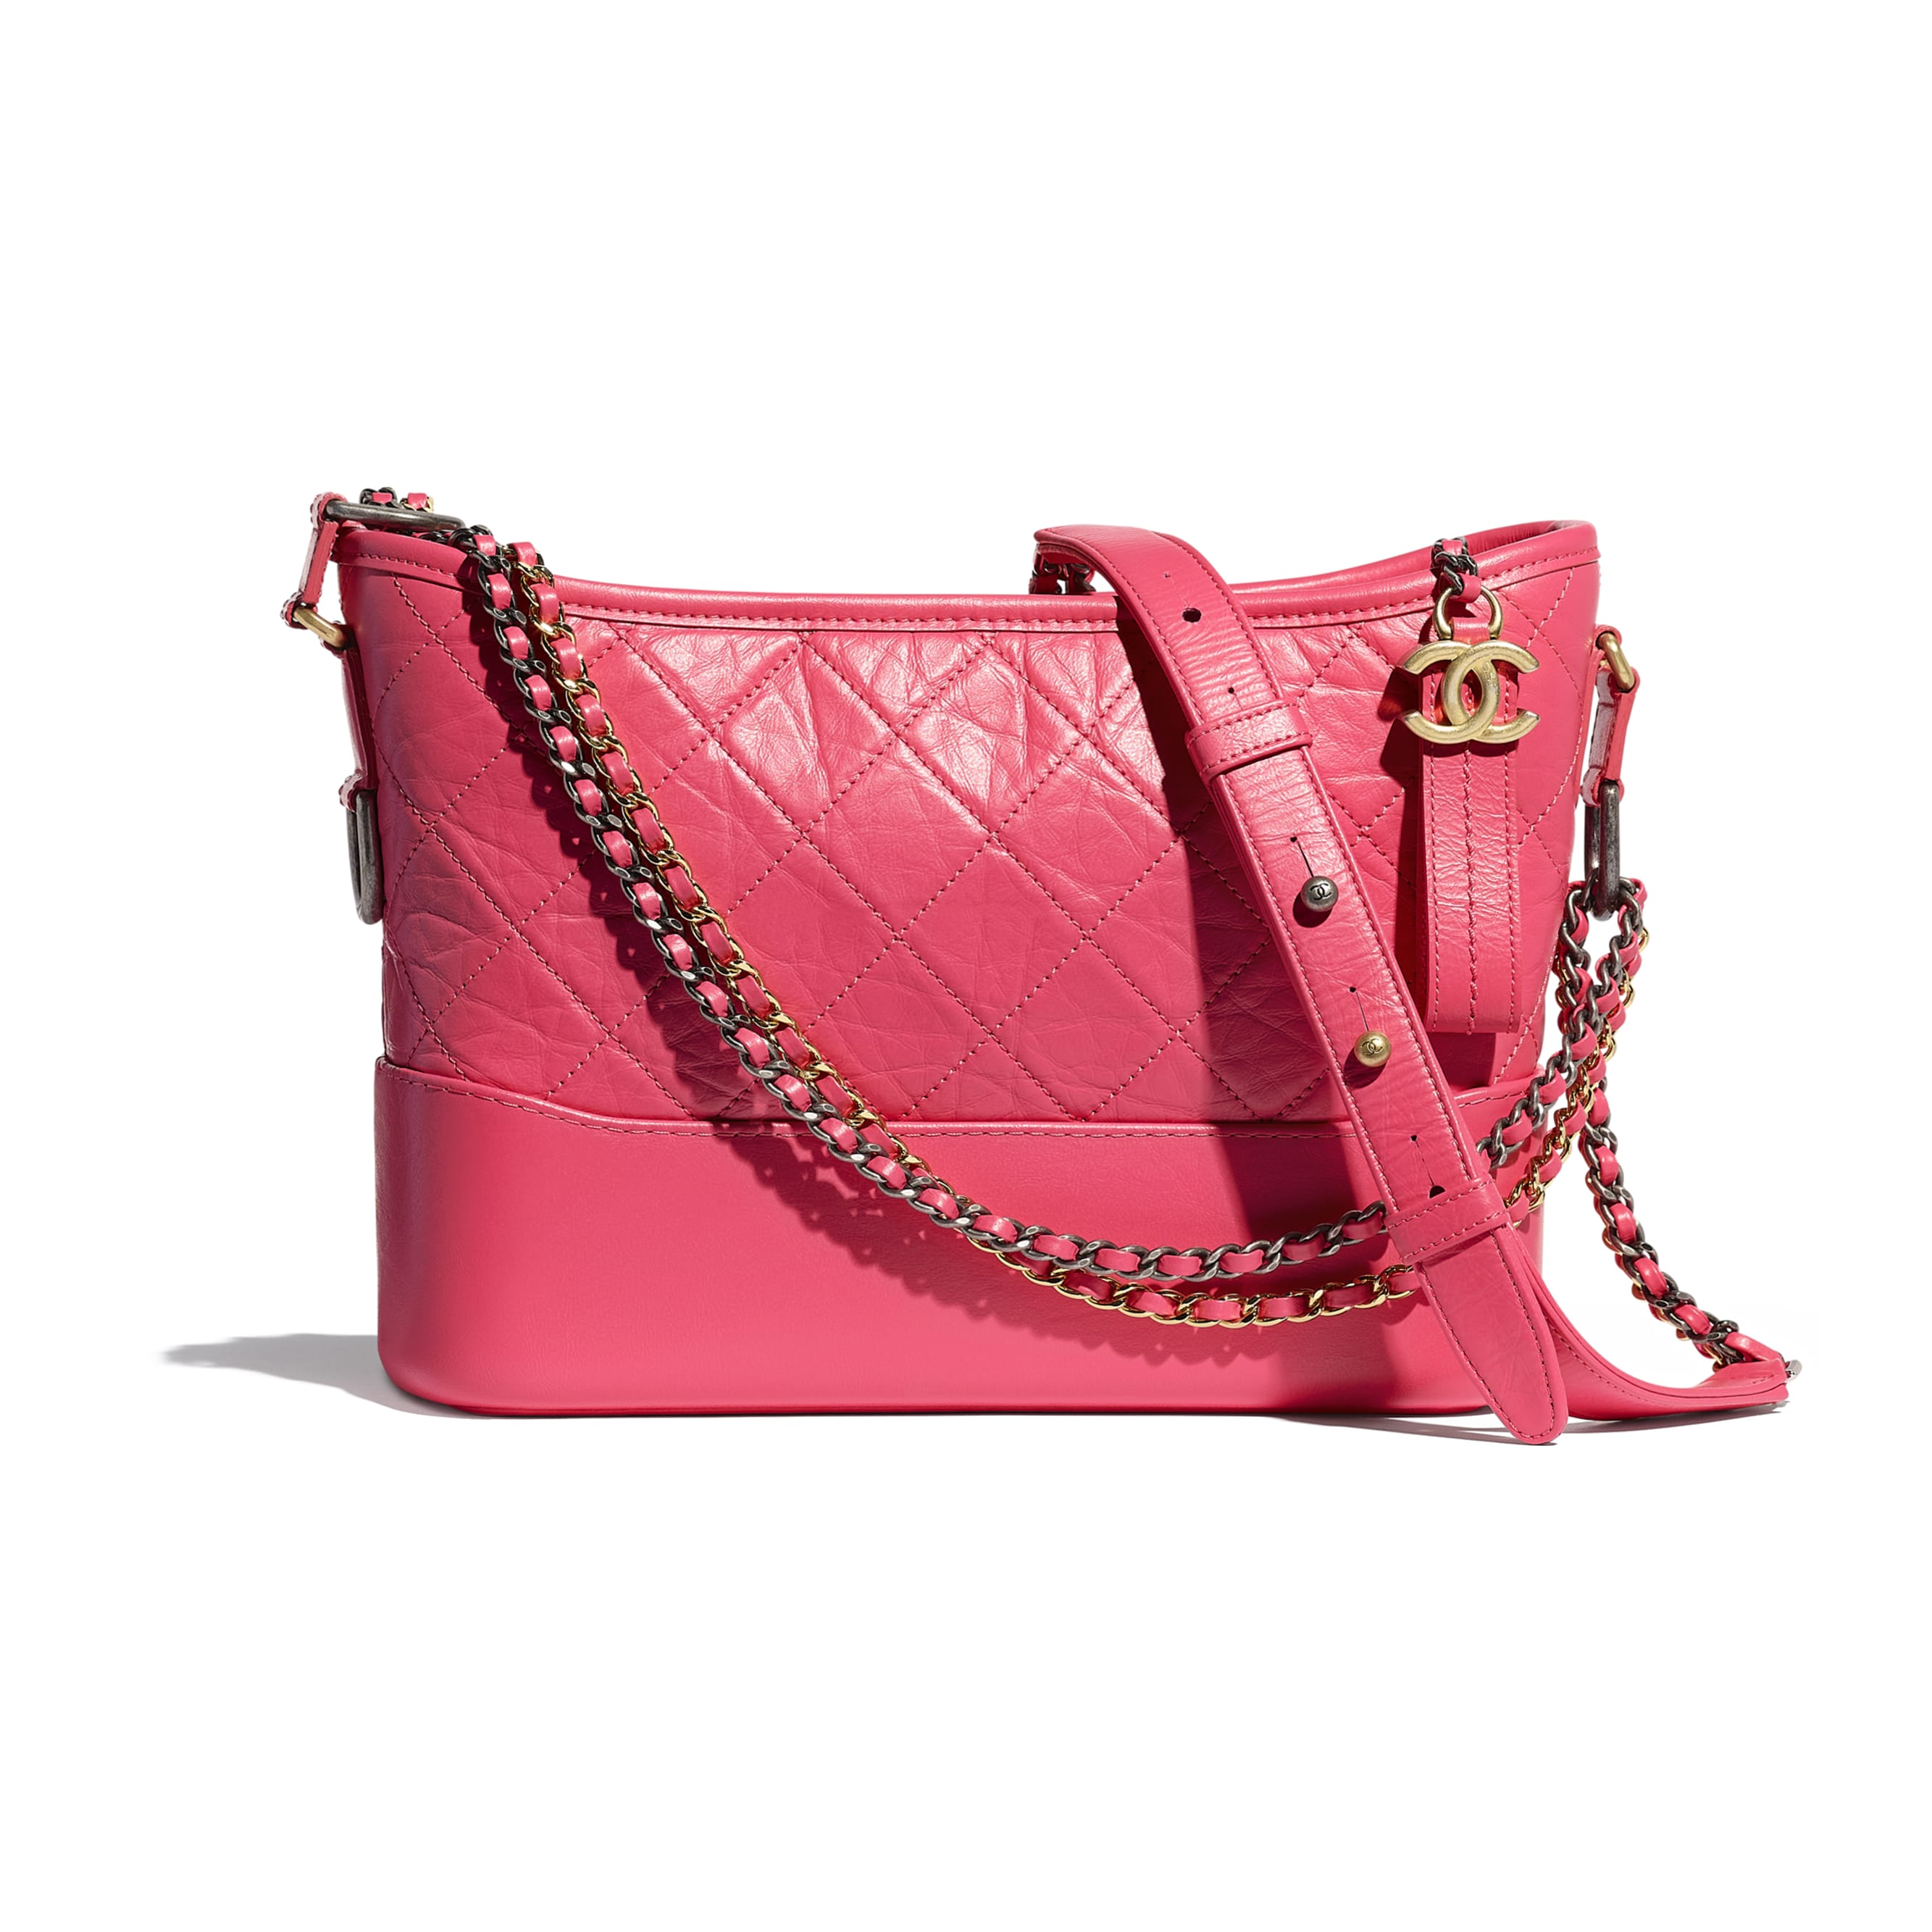 CHANEL'S GABRIELLE Hobo Handbag - Pink - Aged Calfskin, Smooth Calfskin, Gold-Tone, Silver-Tone & Ruthenium-Finish Metal - CHANEL - Default view - see standard sized version